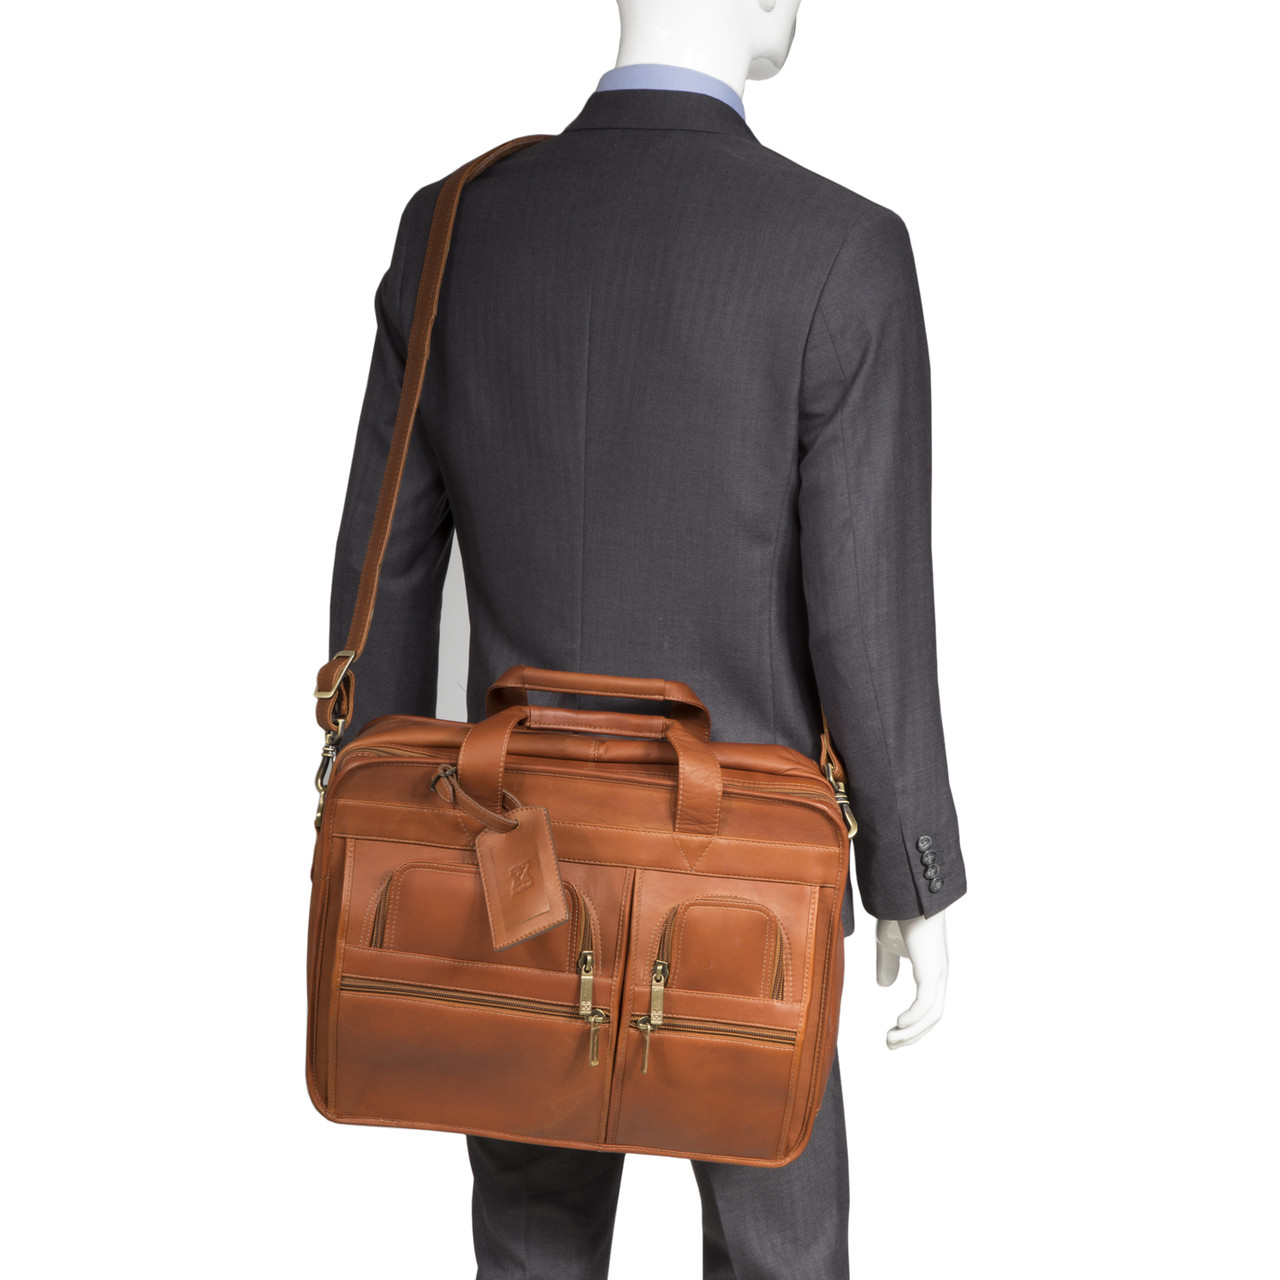 Muiska - New York - Leather laptop Briefcase is expertly handcrafted from the finest Colombian leather